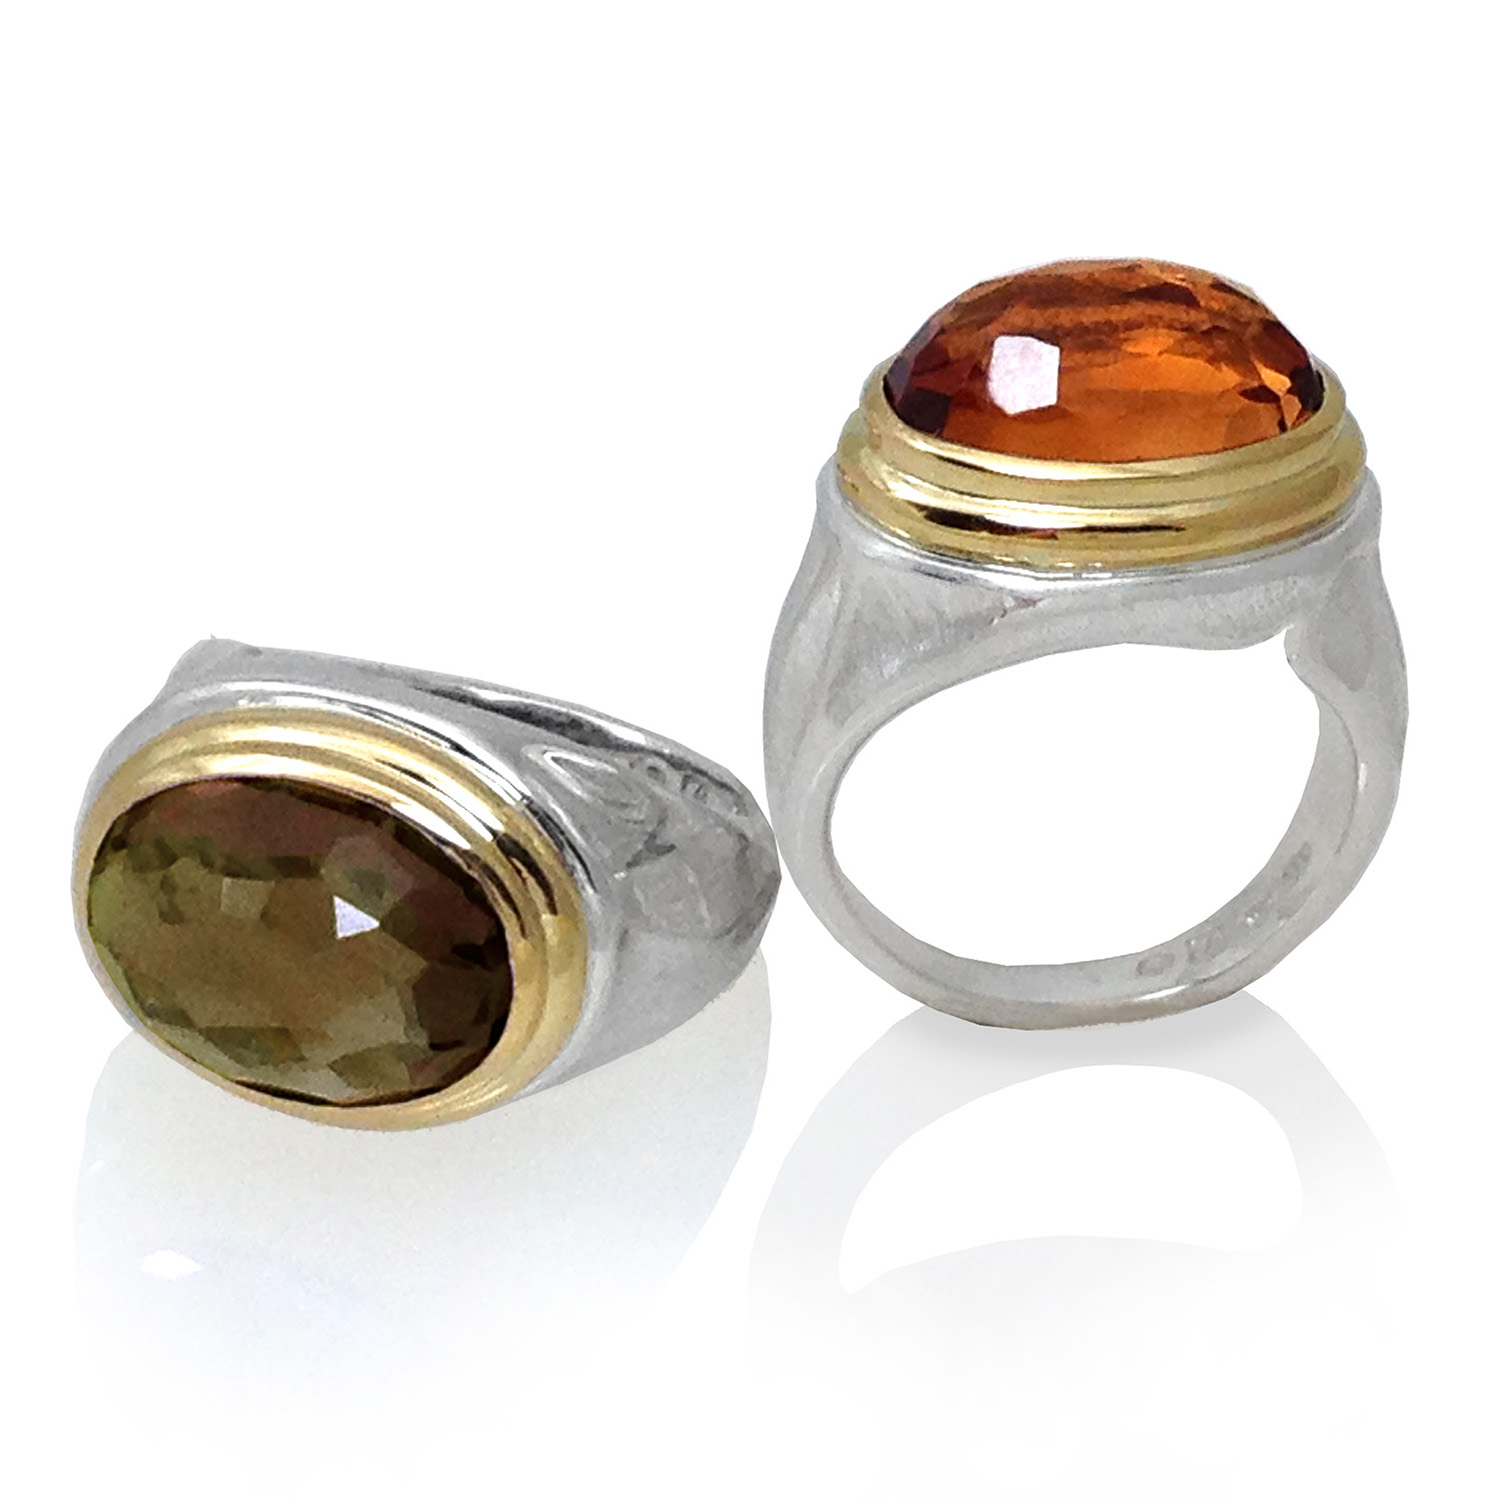 Citrine and Smoky Quartz Rings from K.Mita | Sand Dune Collection